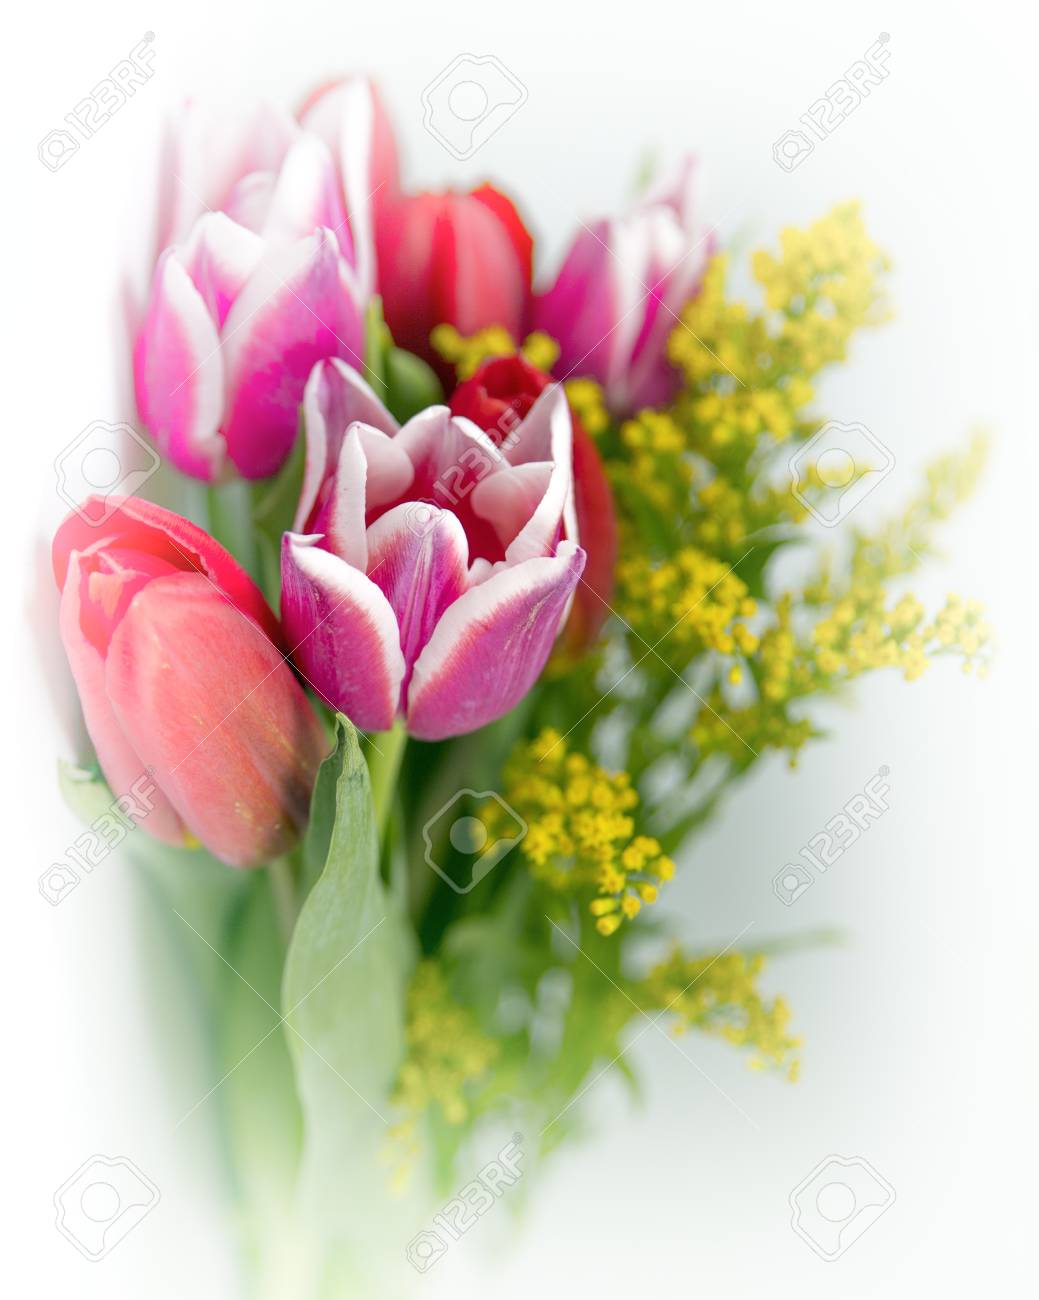 Spring Flowers Bouquet Isolated Lizenzfreie Fotos Bilder Und Stock